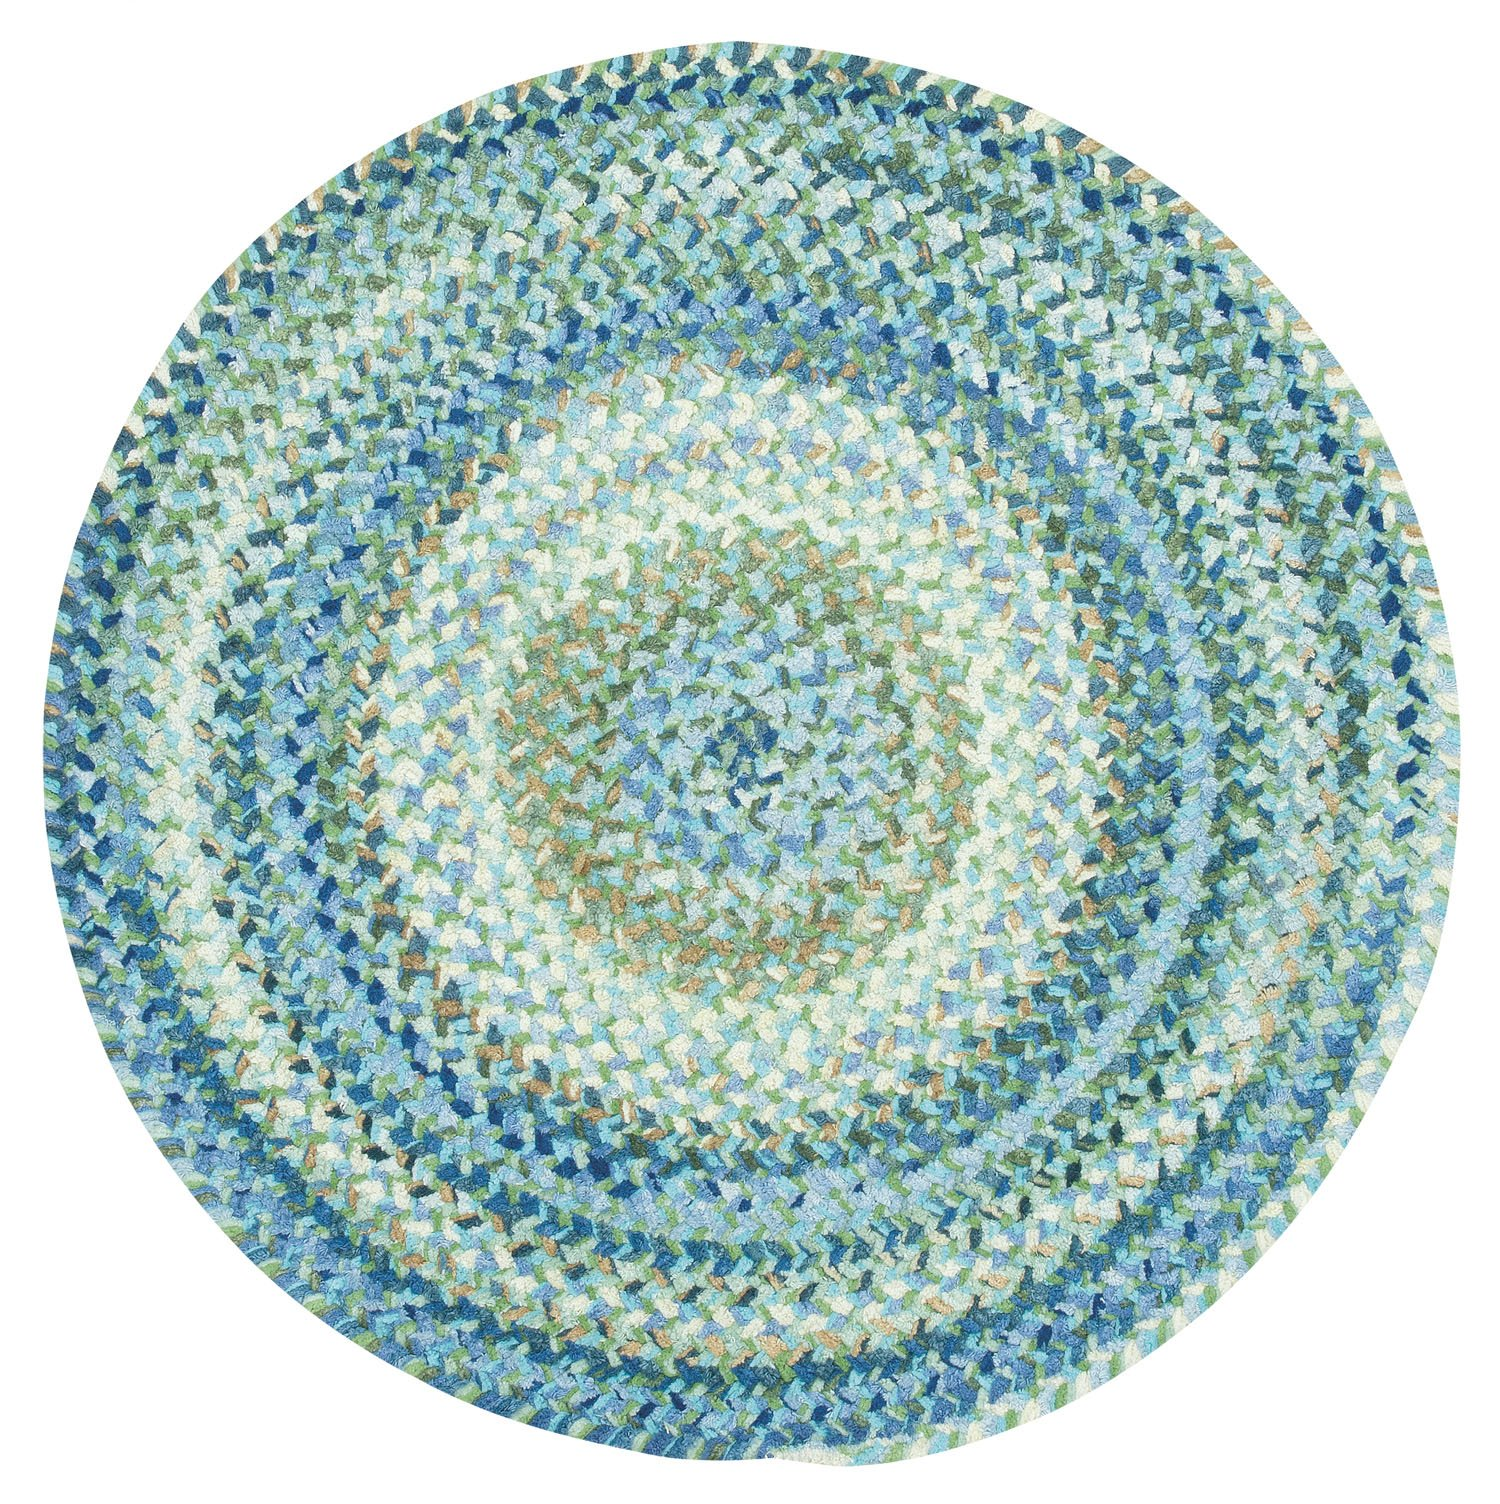 Capel Rugs Ocracoke Round Braided Area Rug, 36'', Light Blue